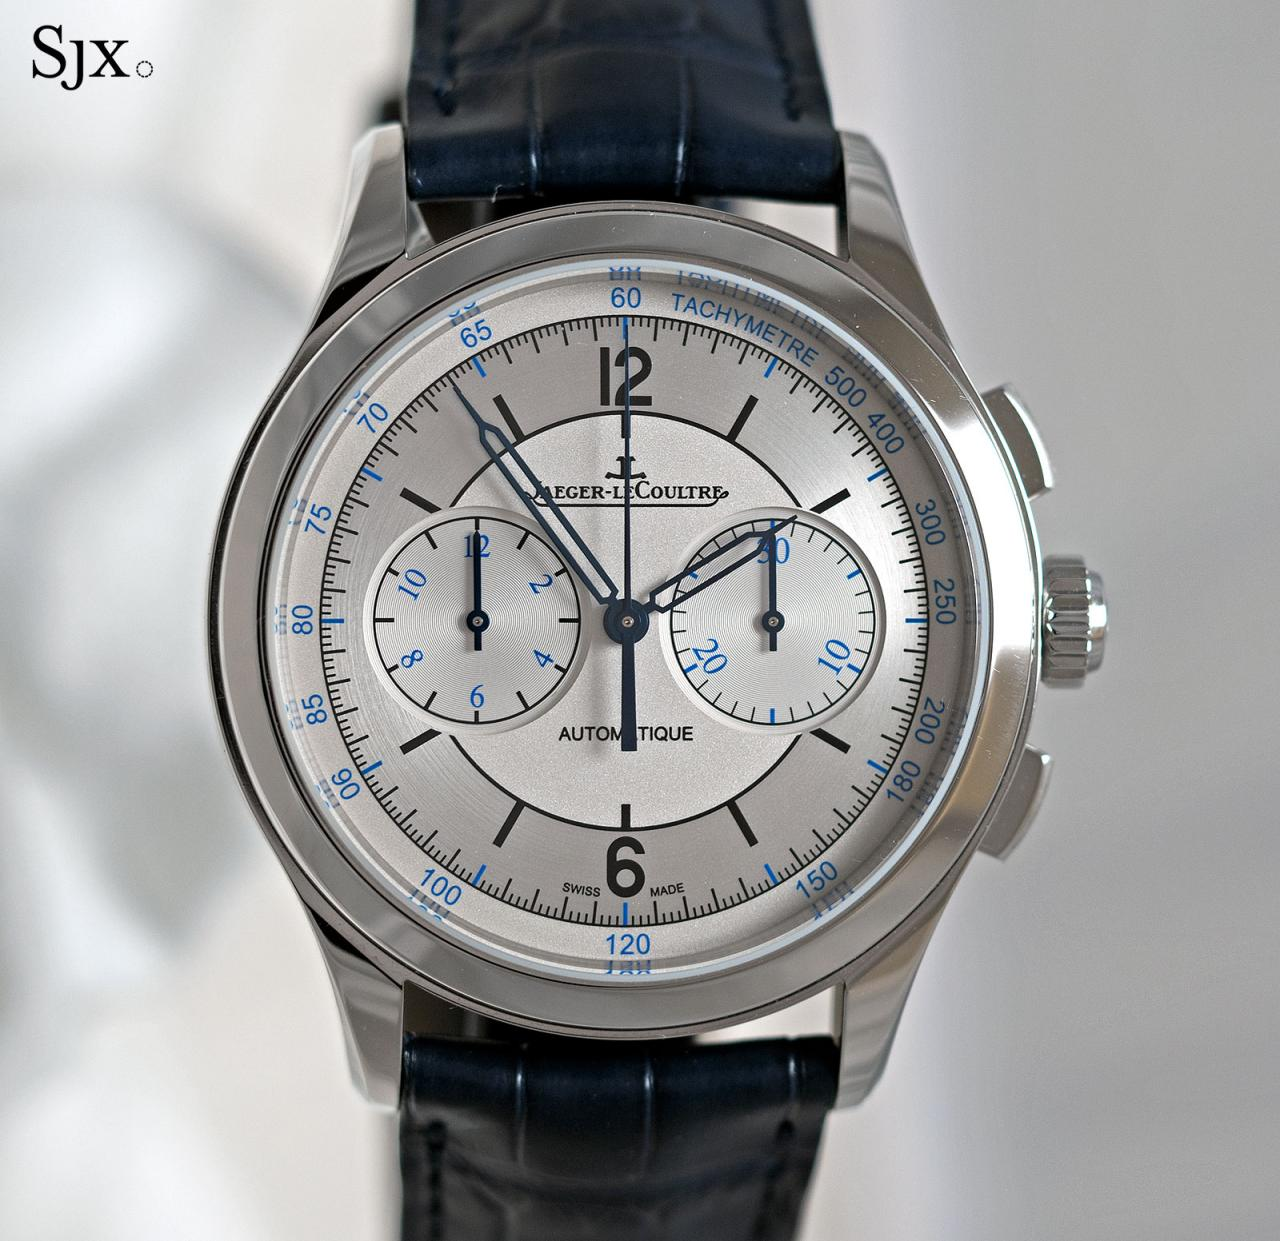 Jaeger-LeCoultre Master Control Chronograph sector dial 6